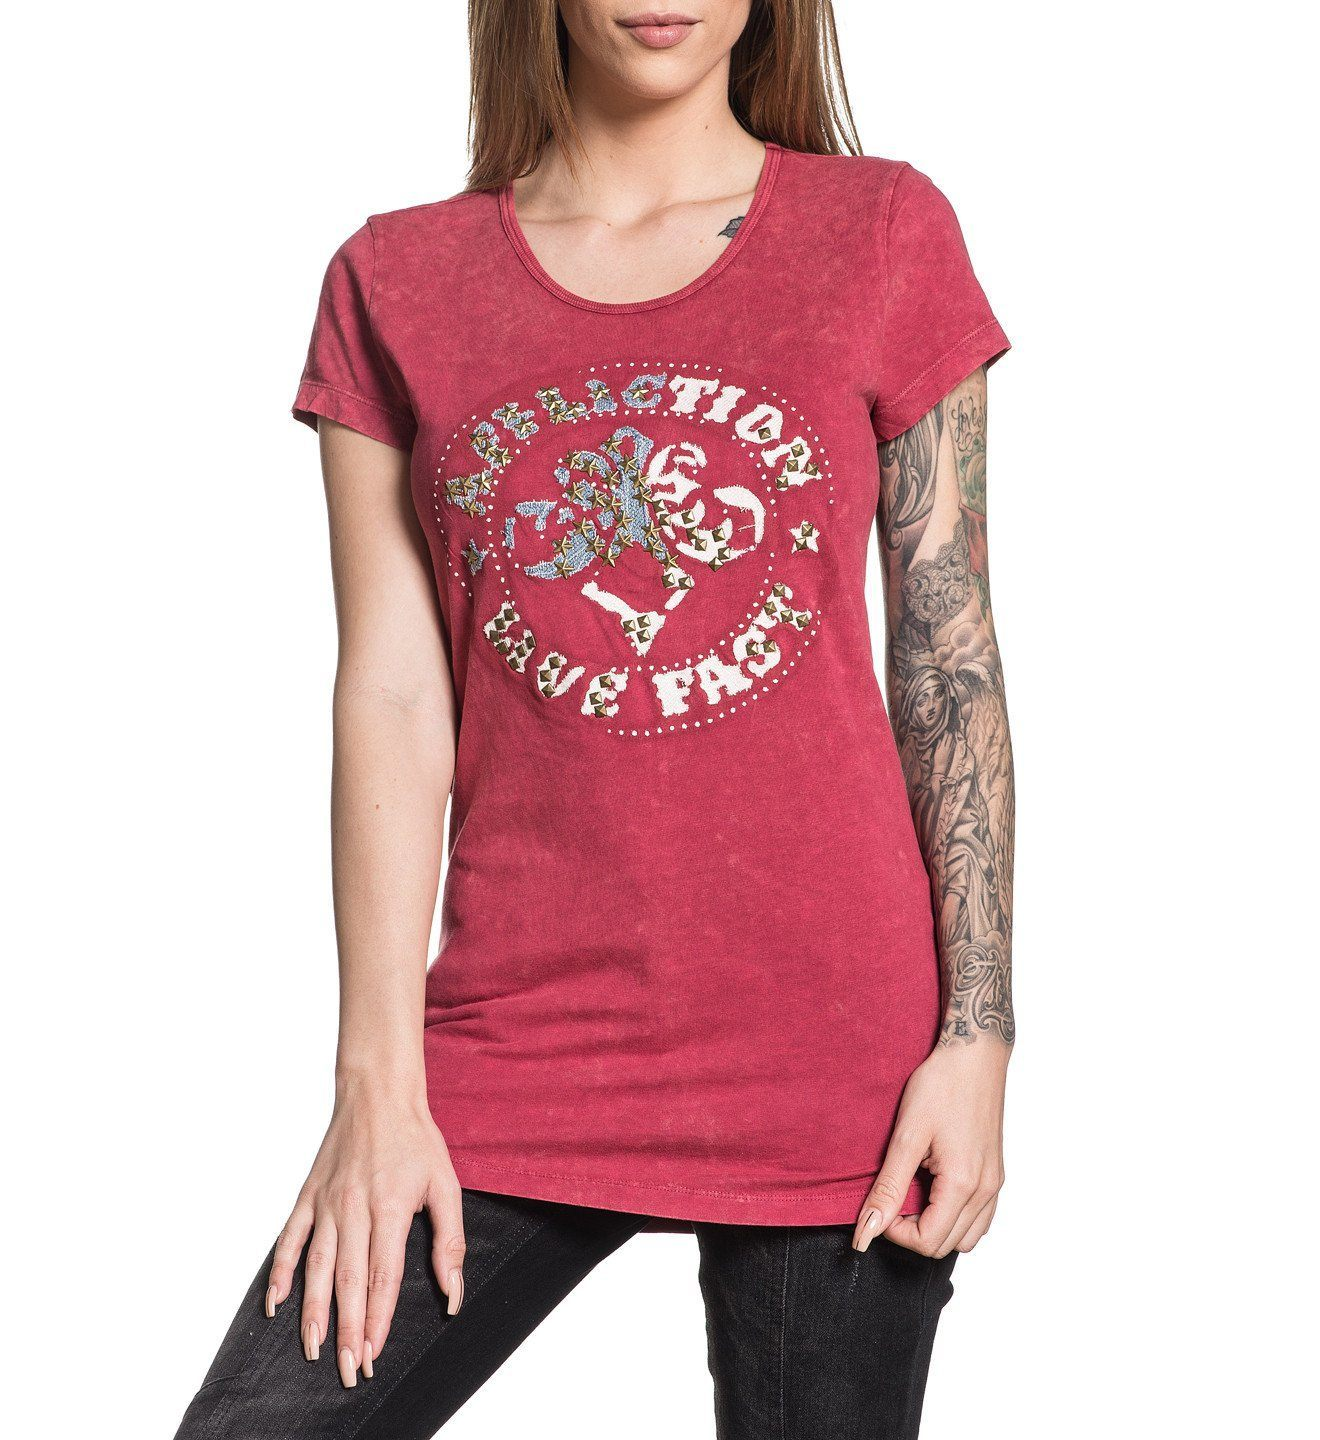 Womens Short Sleeve Tees - Divio Patchwork